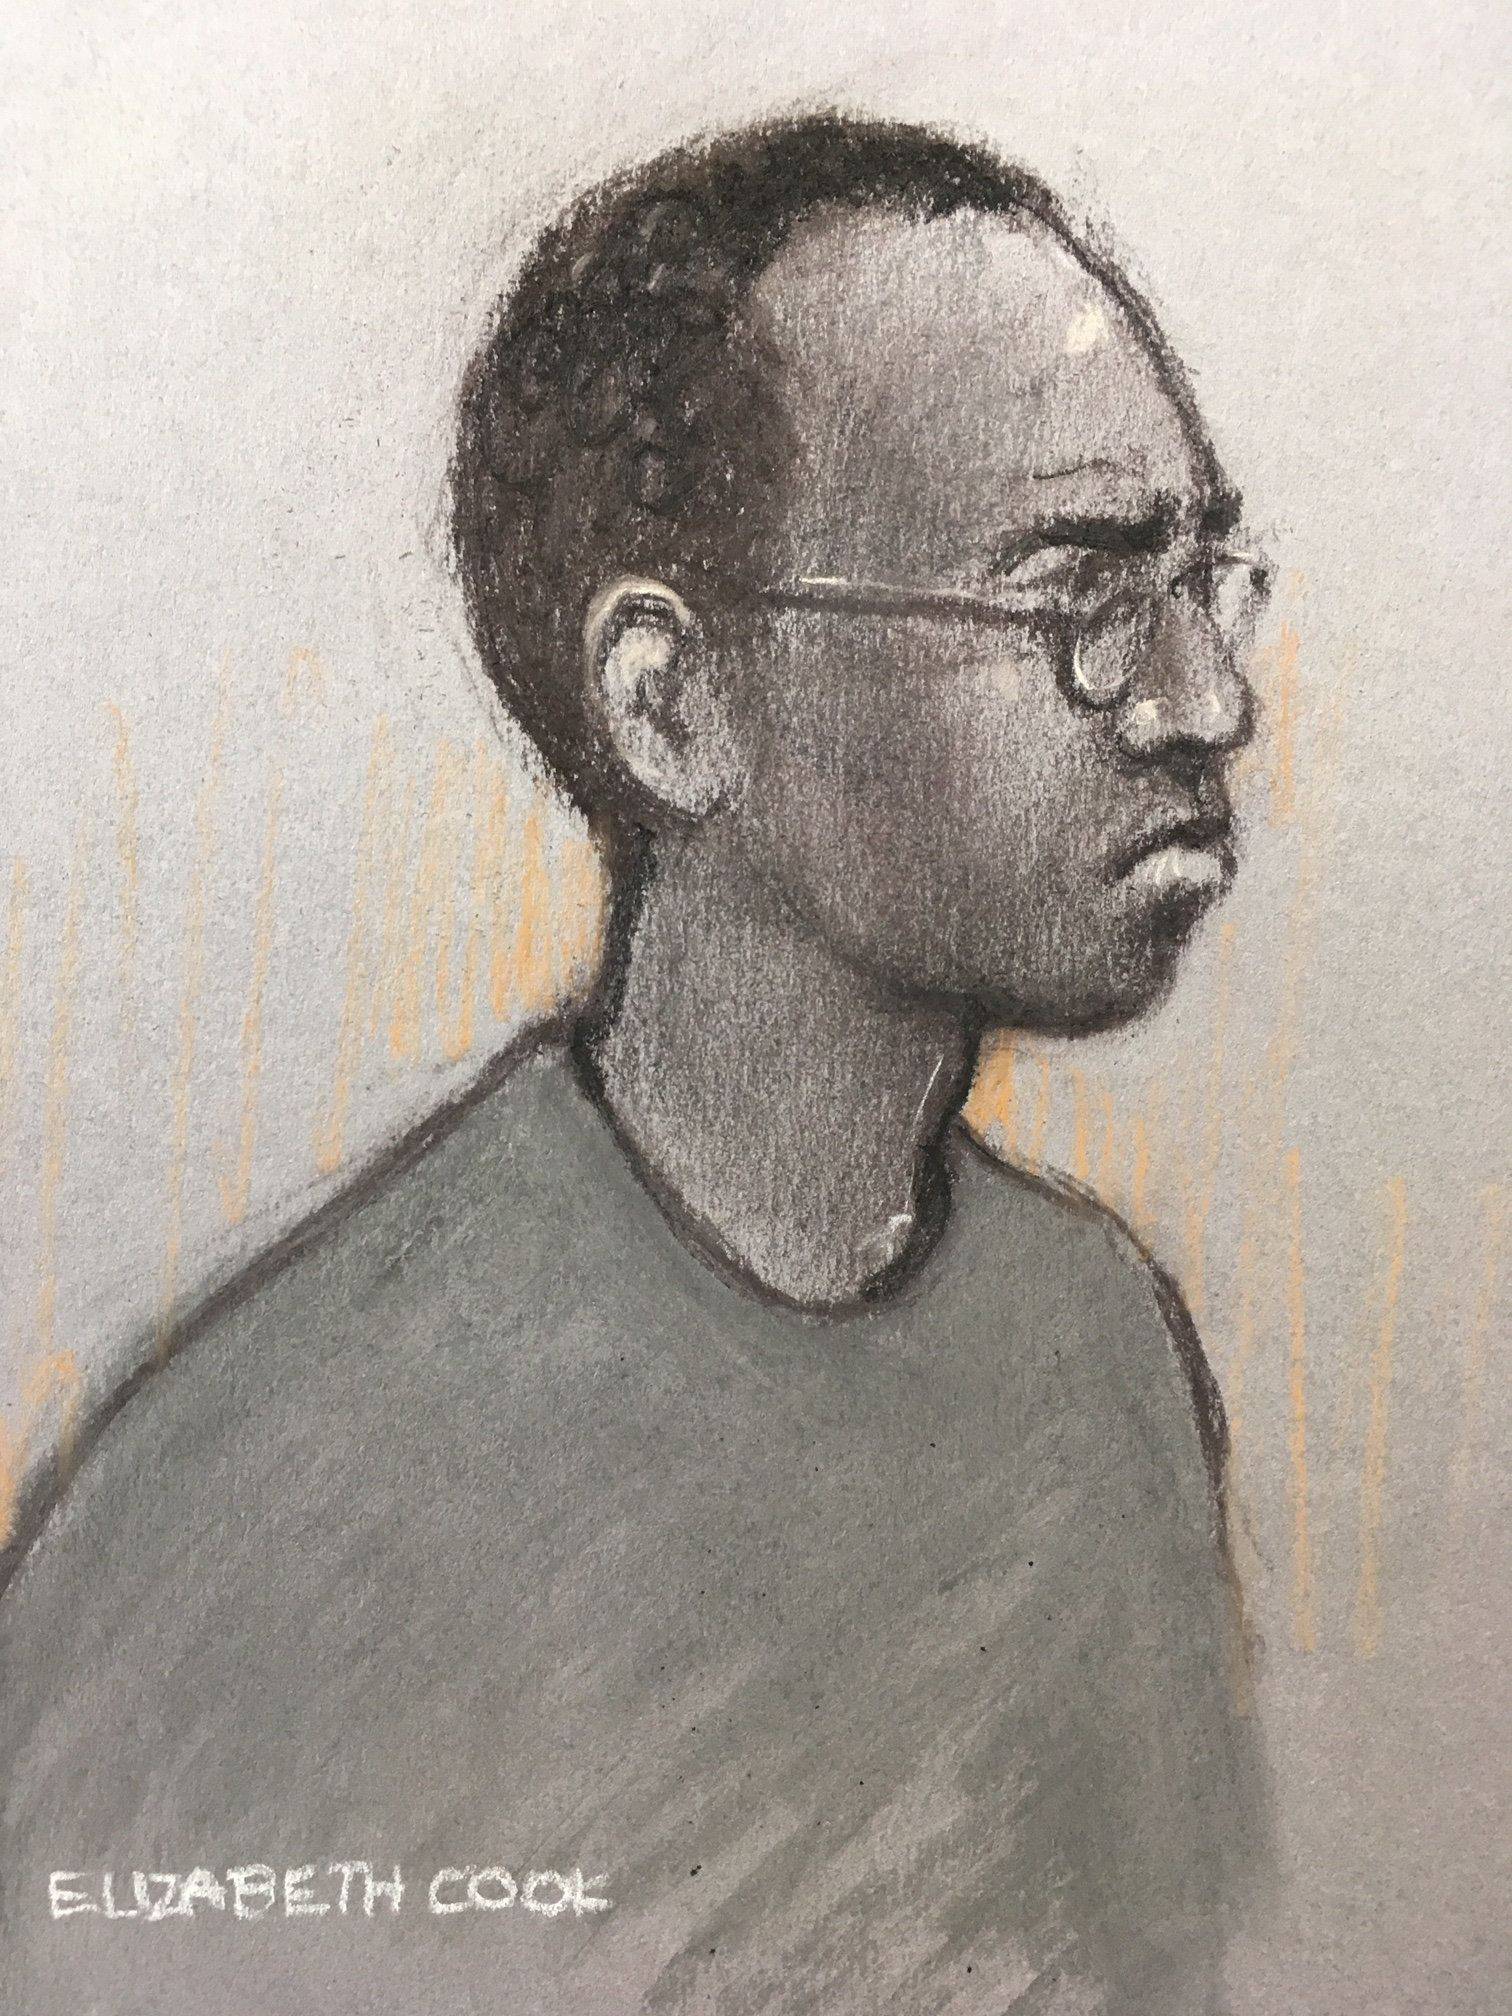 Man Accused Of Murdering A Father In Front Of His Son Says He Is 'Hearing